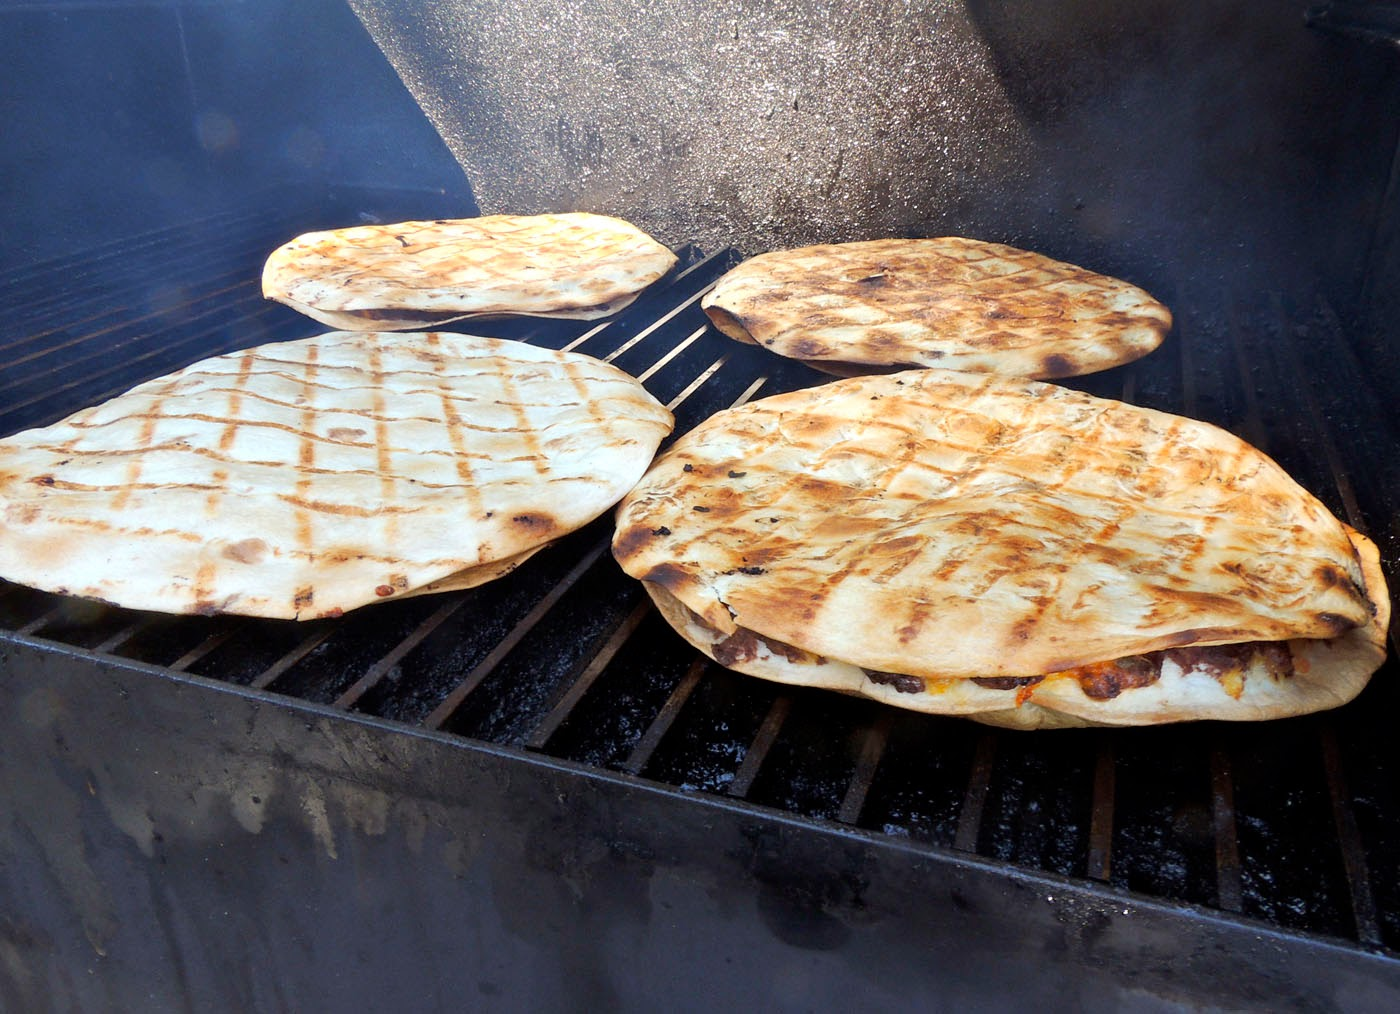 Grilled flour tortillas